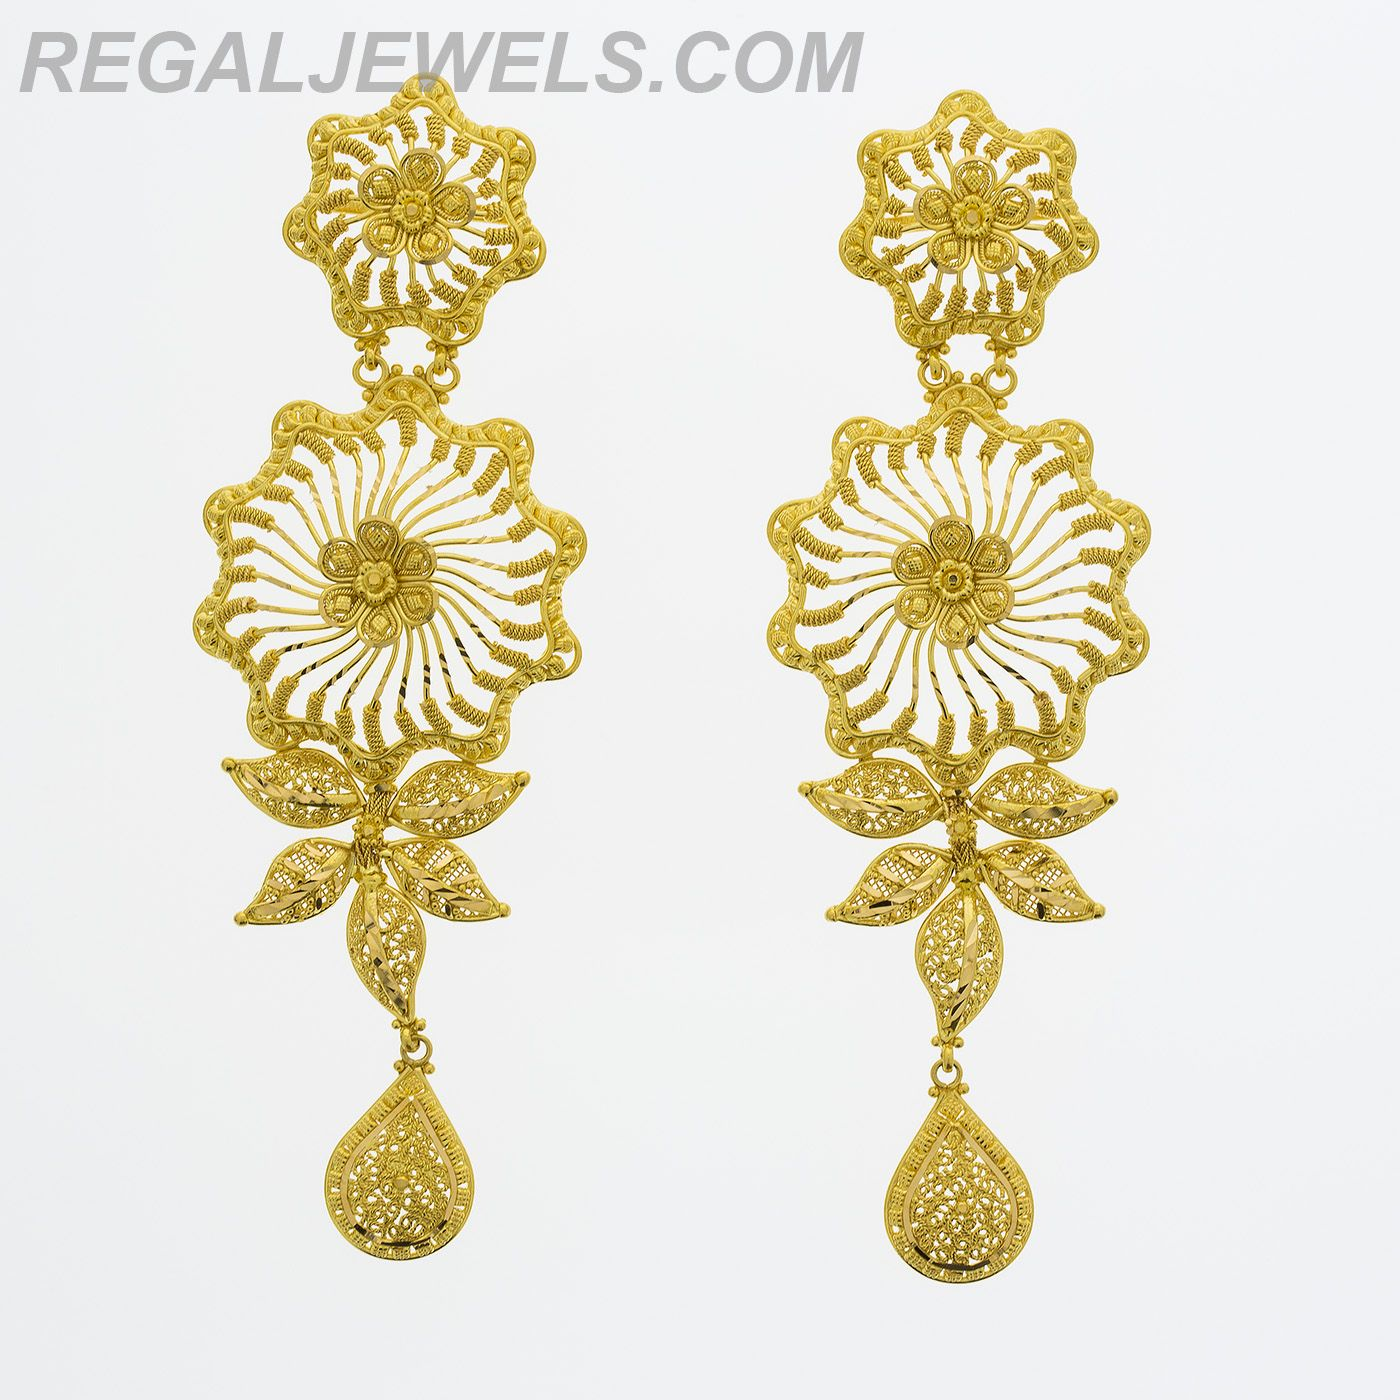 Regal Jewels Online - 22KT Gold Filigree Floral Design Earring ...